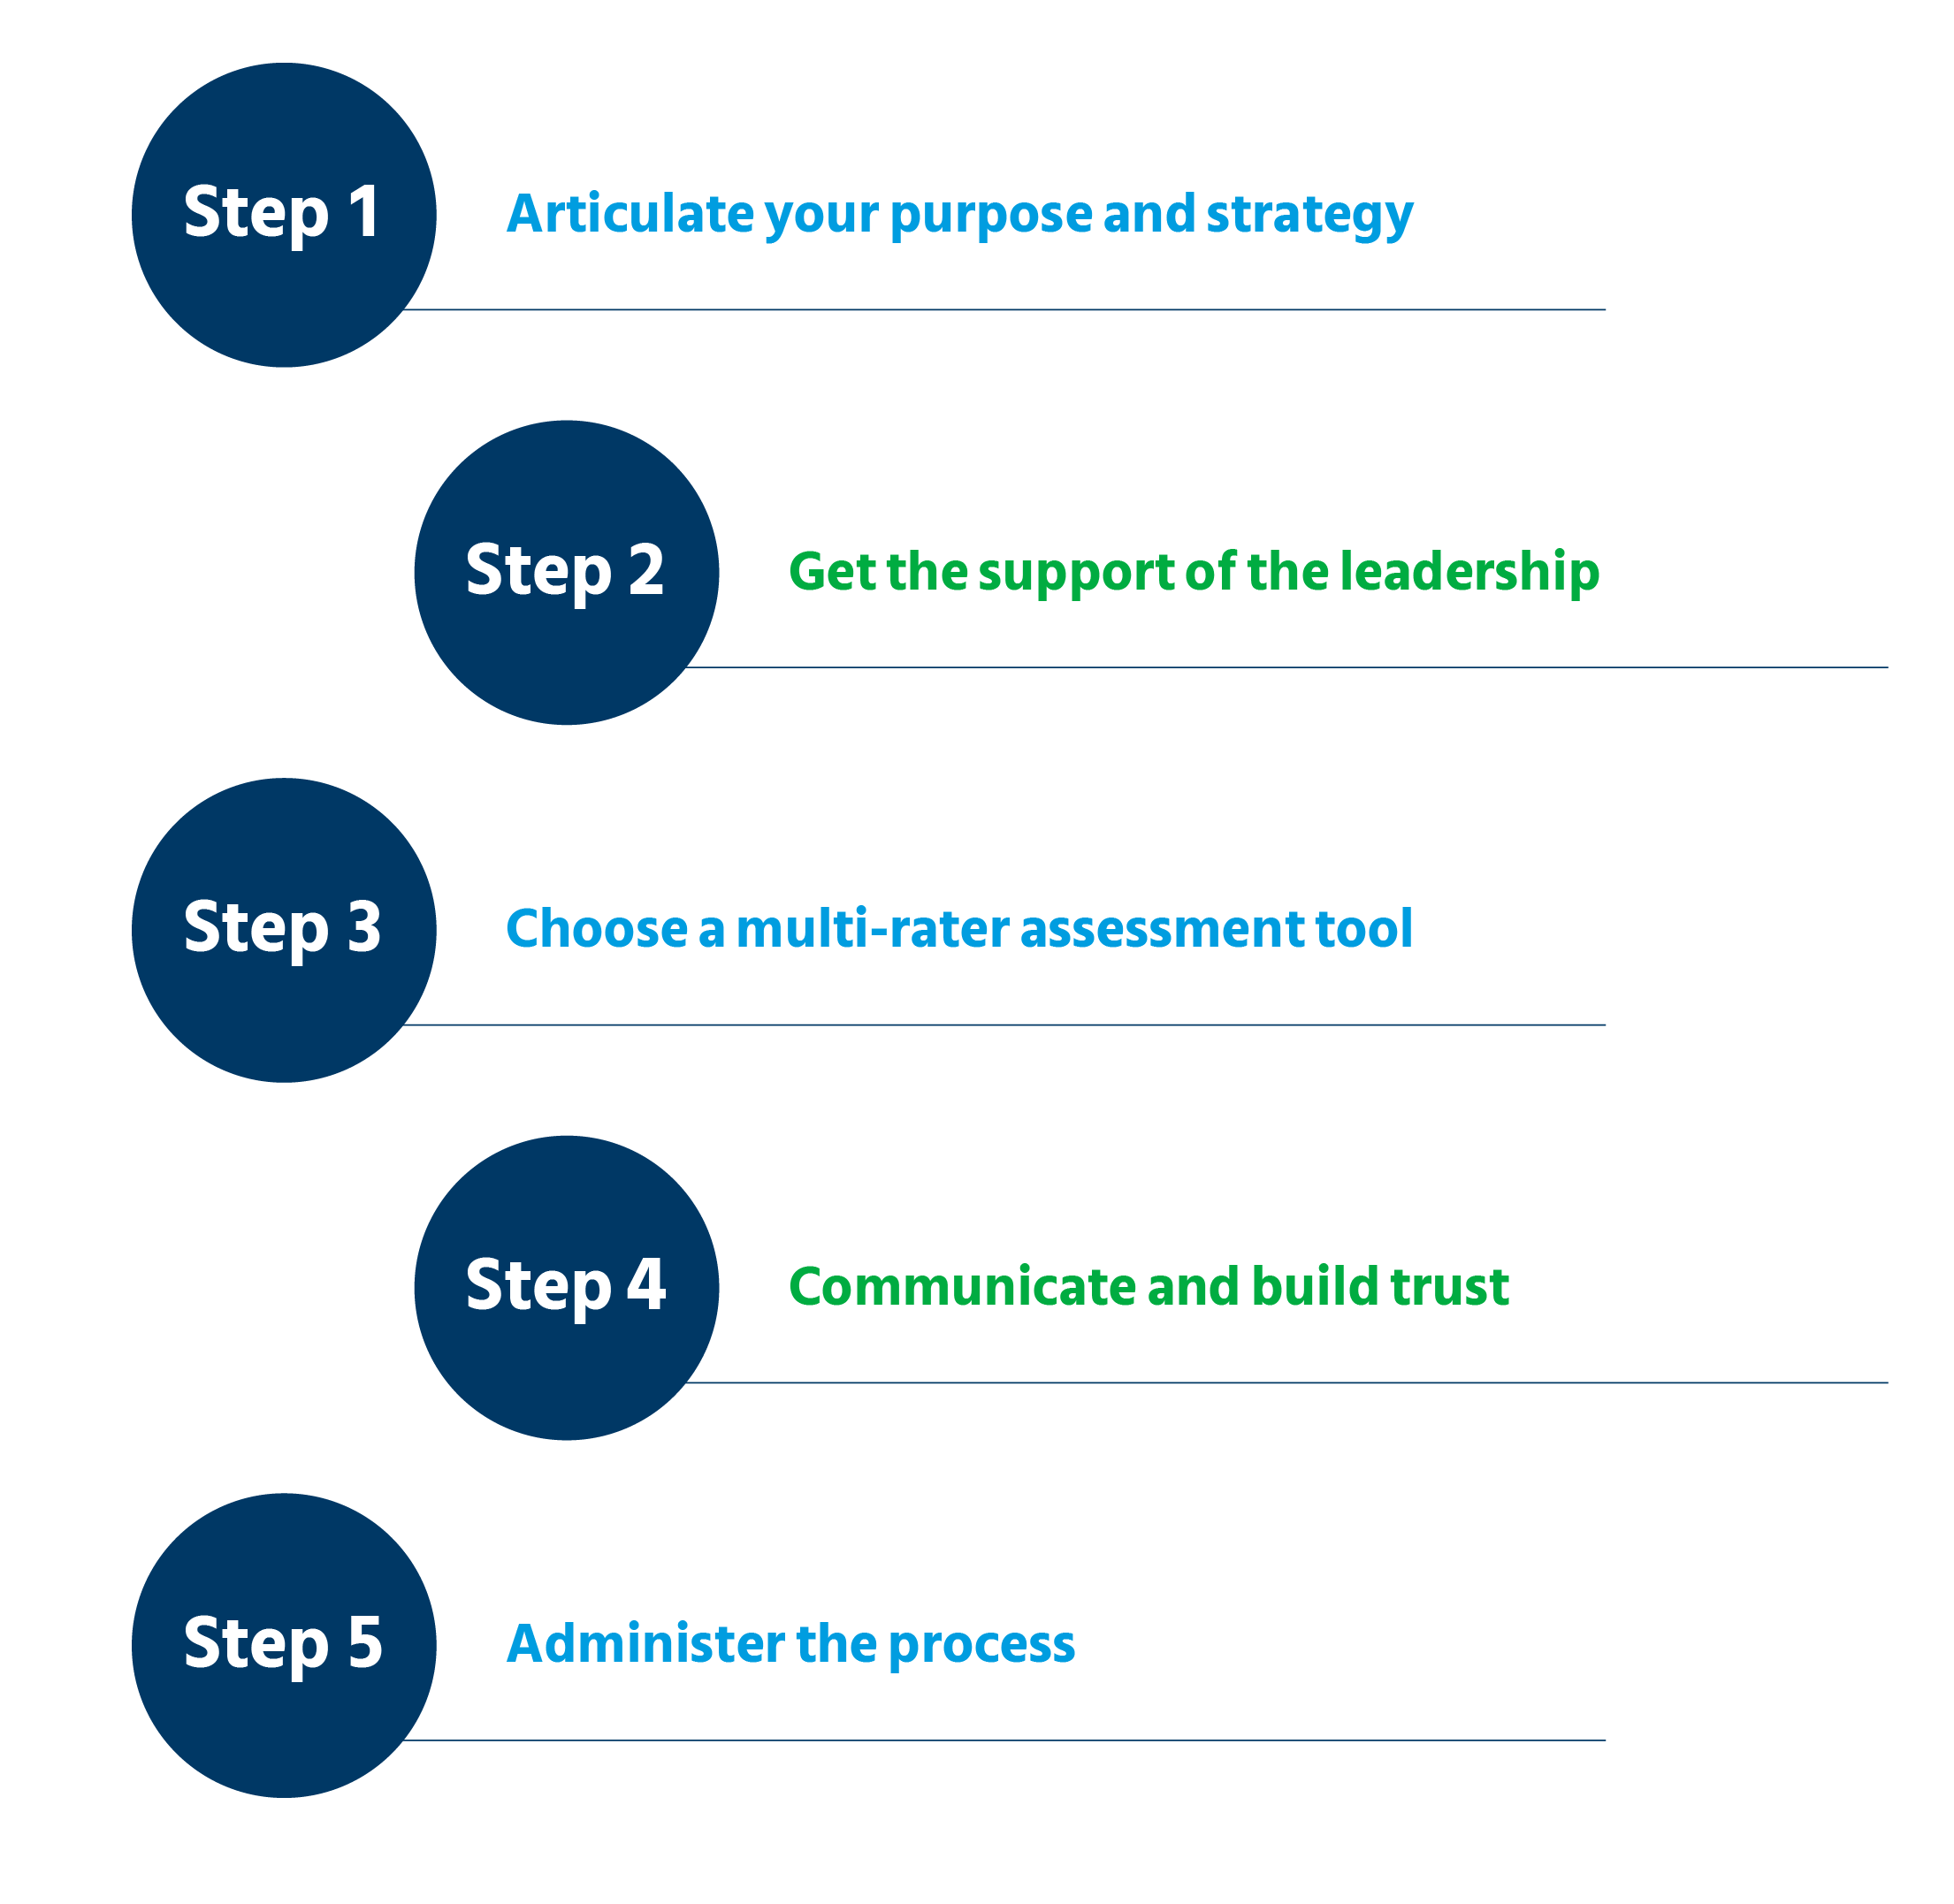 step-by-step process of implementing multi-rater feedback